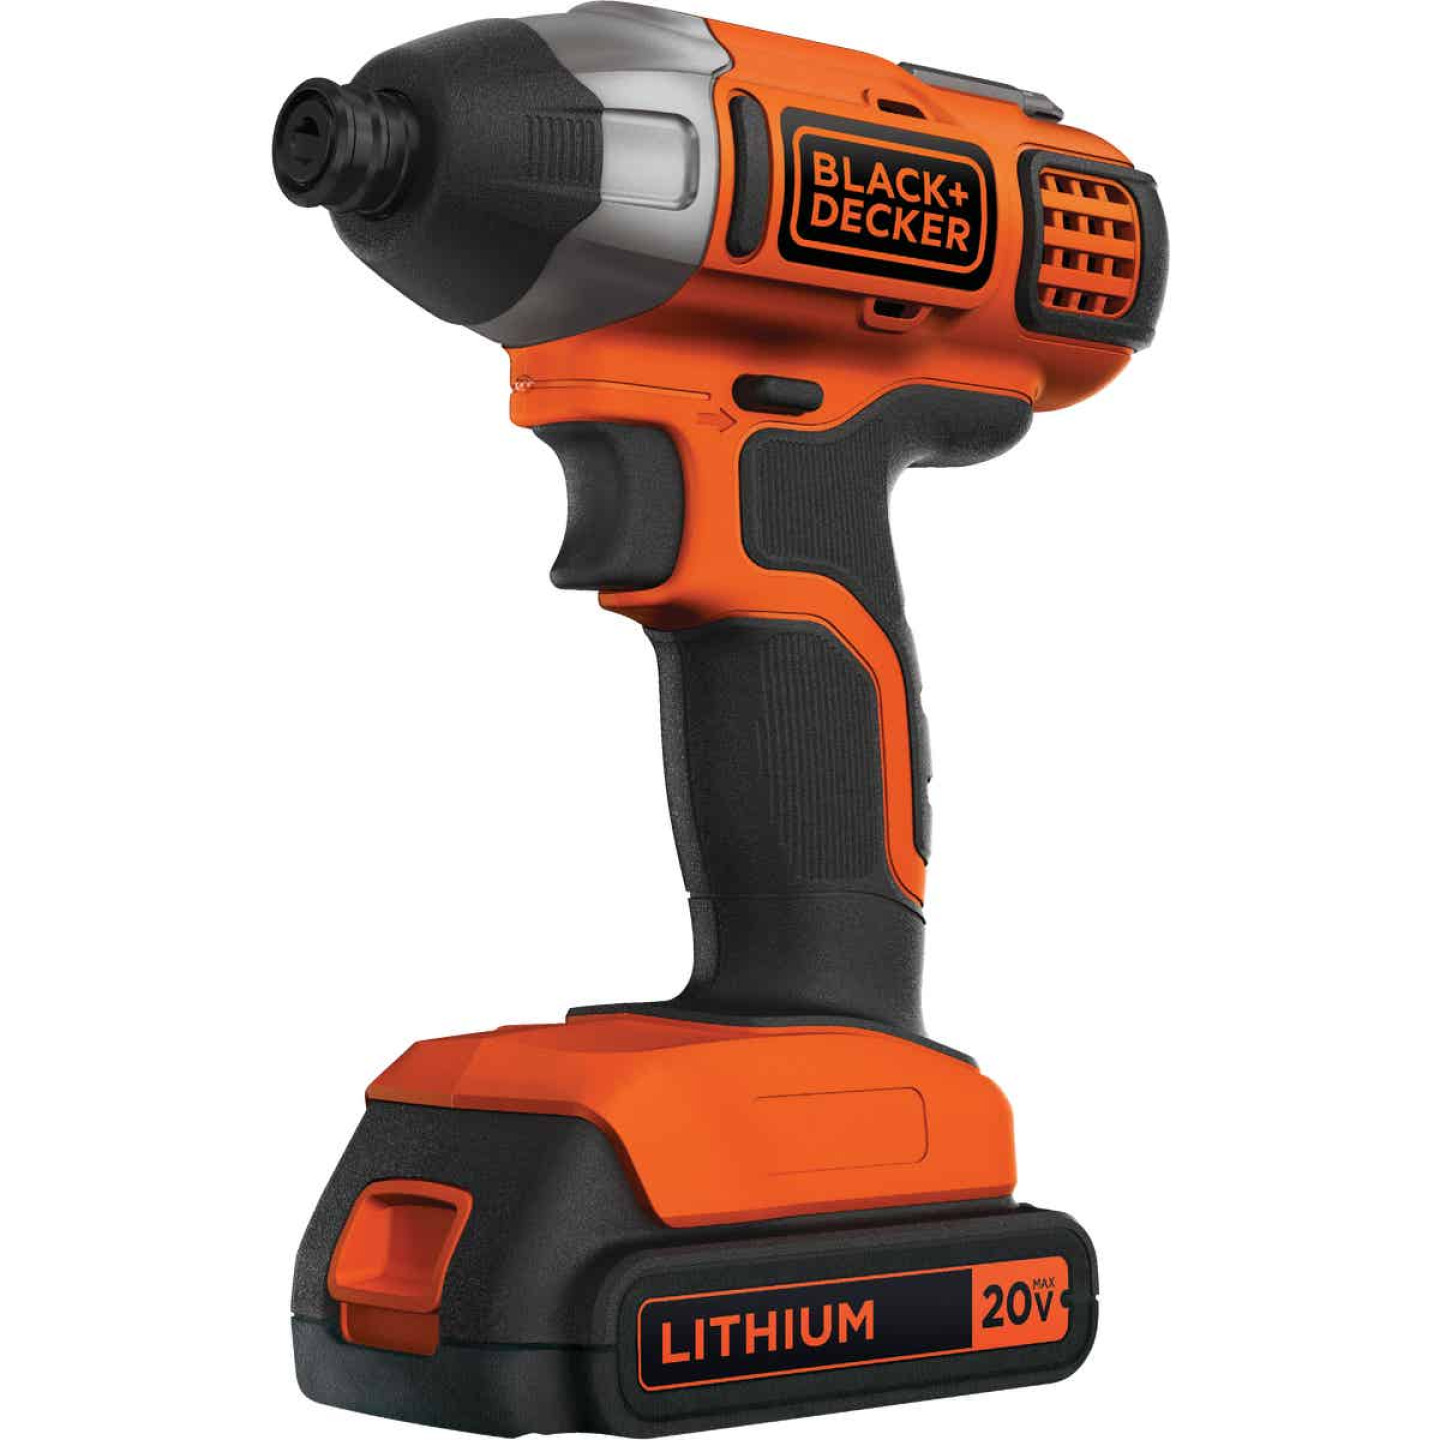 Black & Decker 20 Volt MAX Lithium-Ion 1/4 In. Hex Cordless Impact Driver Kit Image 5